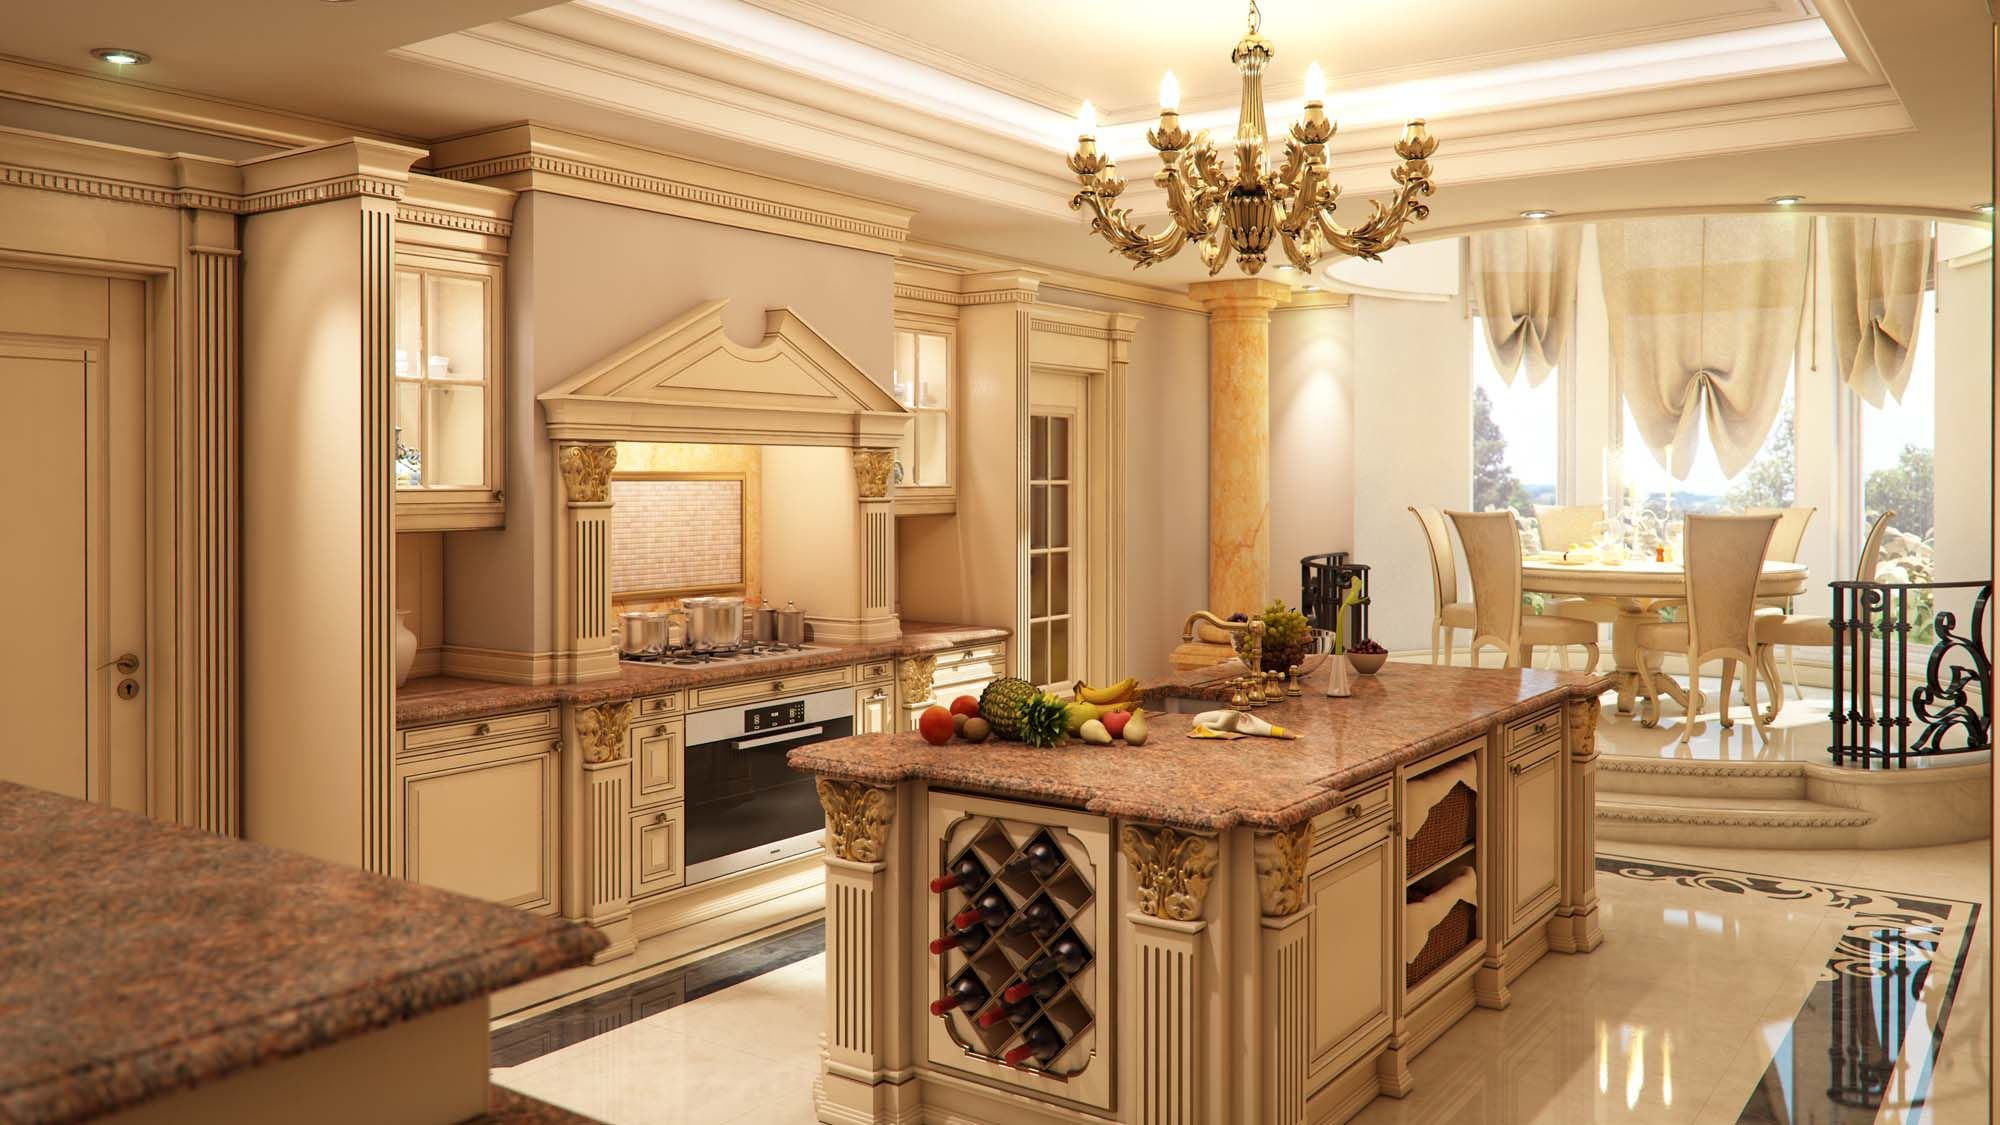 Classy Luxury Kitchen Create An Exceptional Decorating Level With Beautiful Bathroom Living Rooms Pools Kitchens A Living Room Styles Luxury Kitchens Home Decor